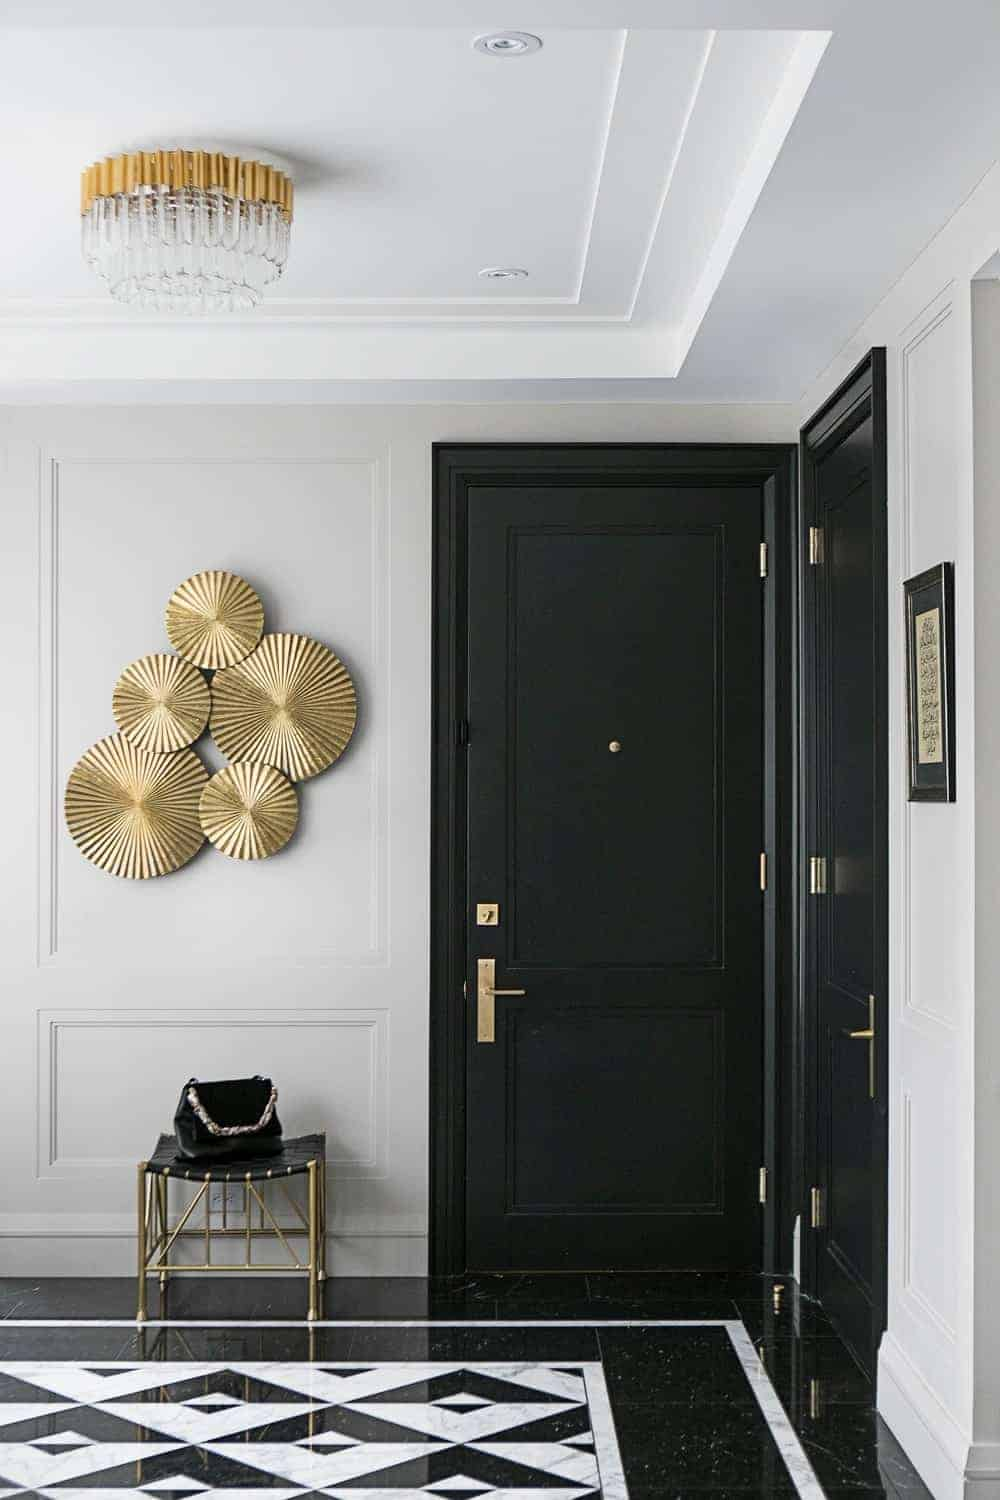 This simple foyer counterbalances its lack of floor size with an ample supply of elegance in its black white patterned marble flooring paired with the black door contrasted by the white tray ceiling. The gold elements in this foyer serve to augment the black and white contrast.